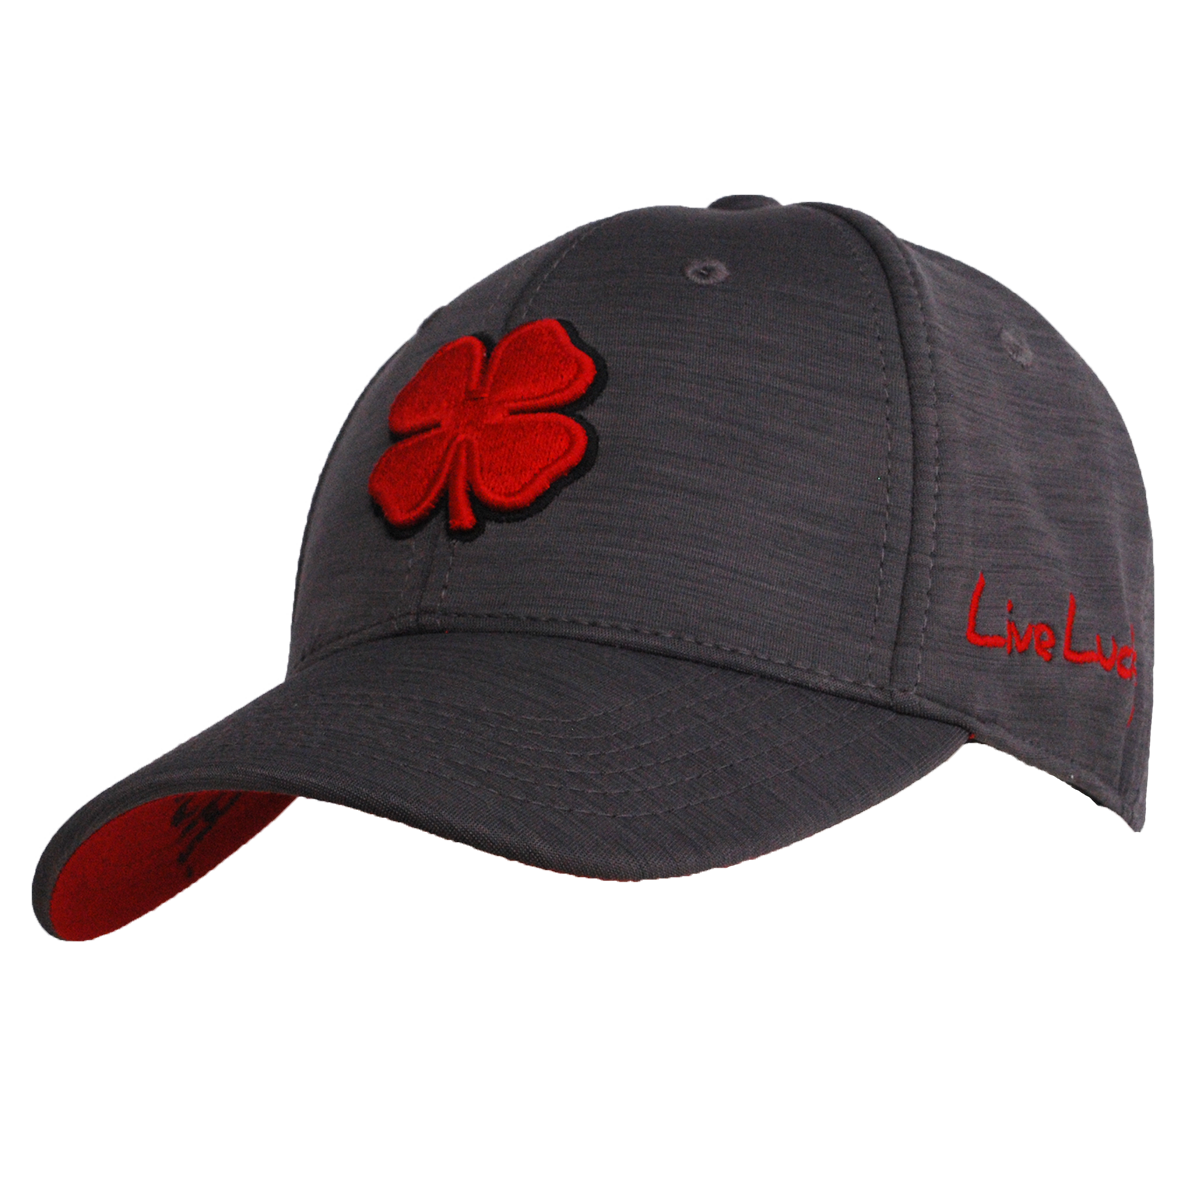 Black Clover Dynamic Heather Cap - The Matador 8745b8d0e85